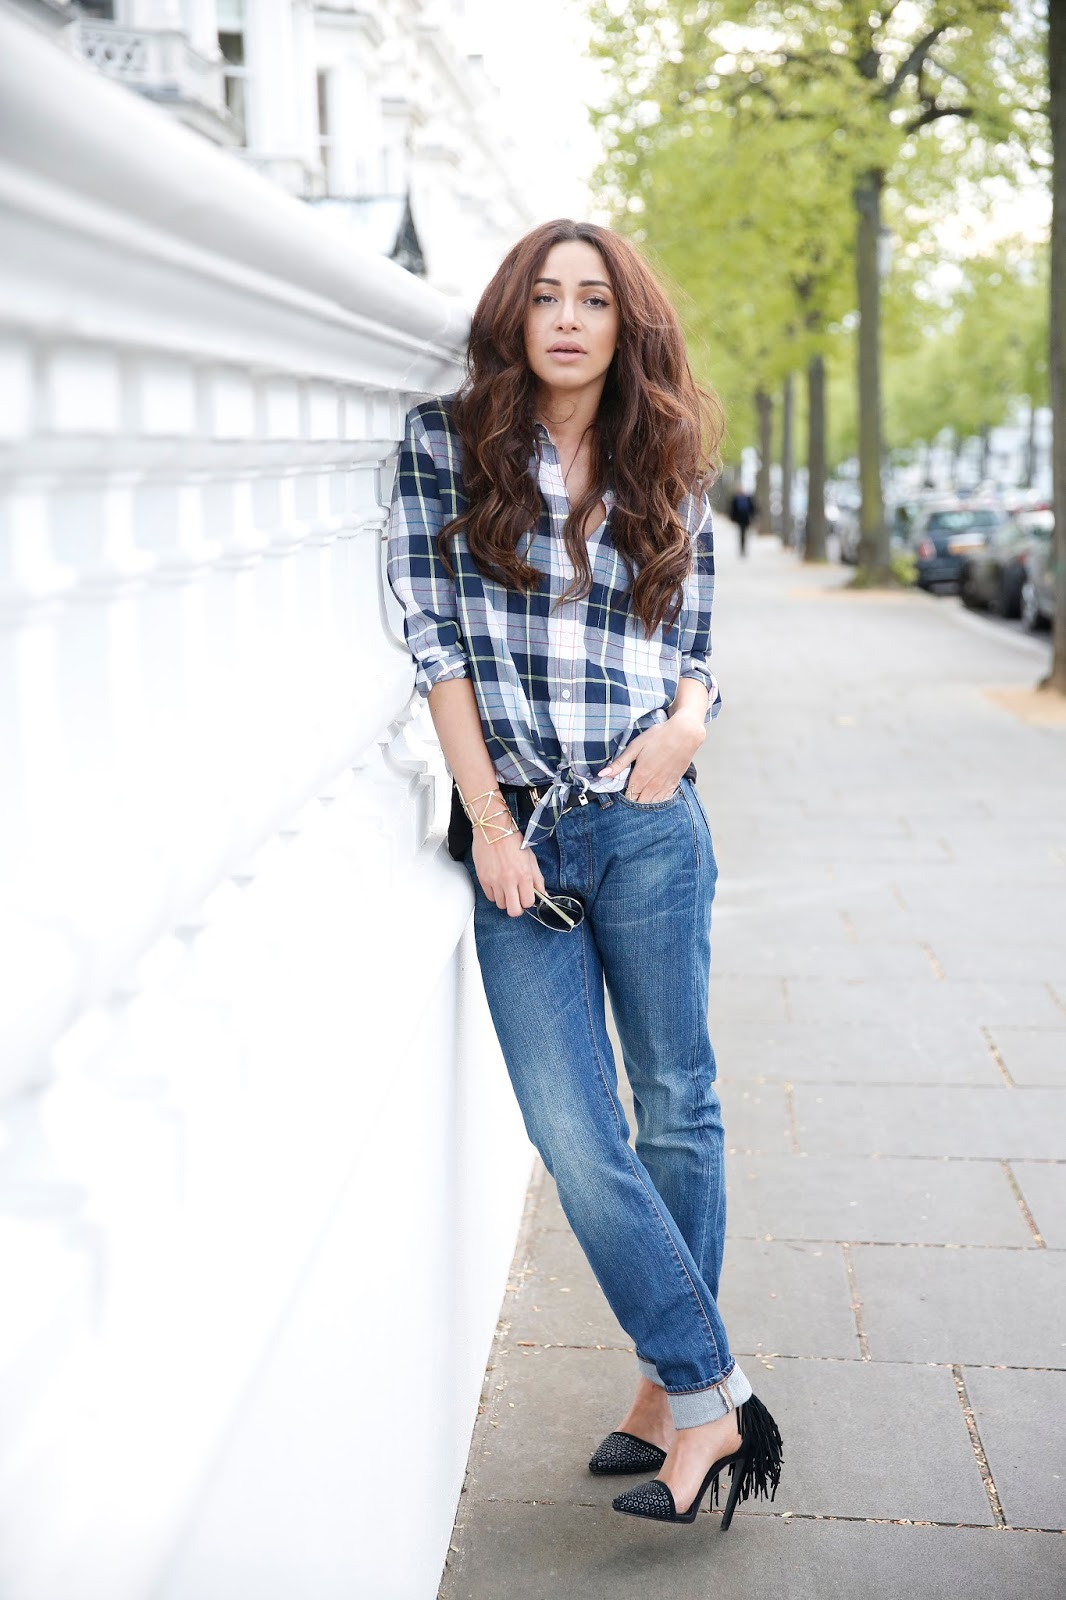 Victoria Metaxas - London fashion photographer and blogger